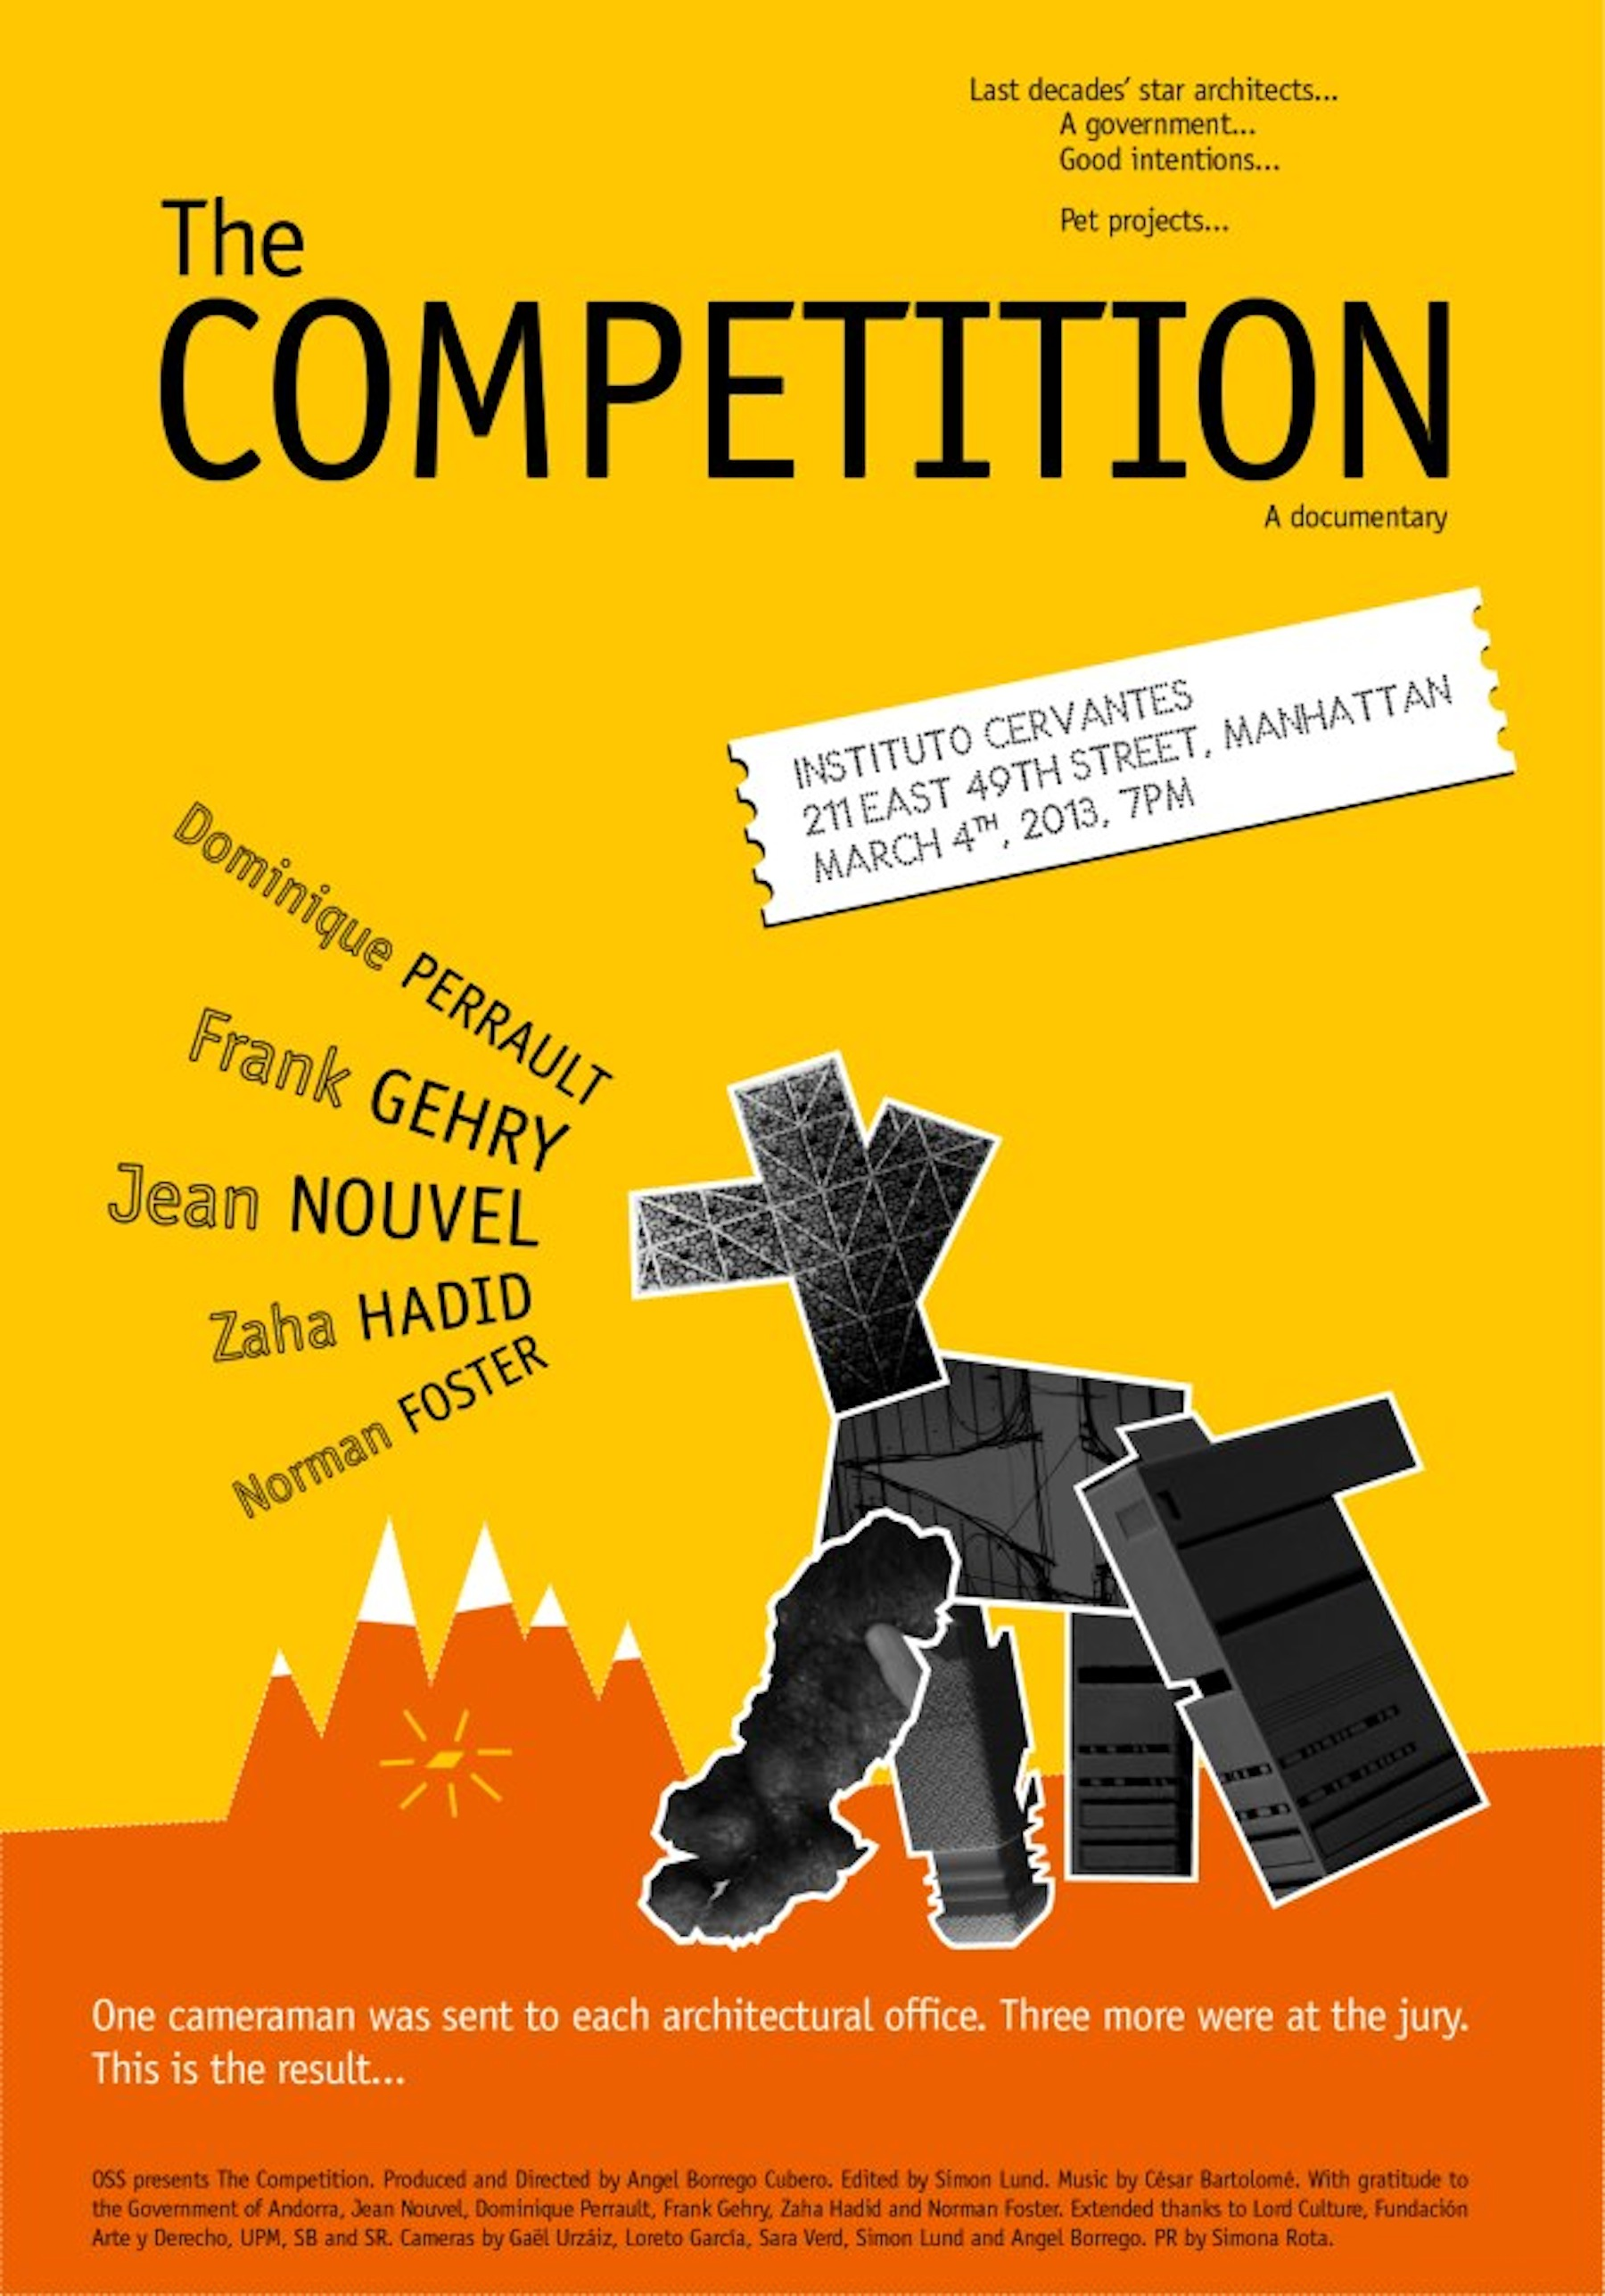 Movie industry competition